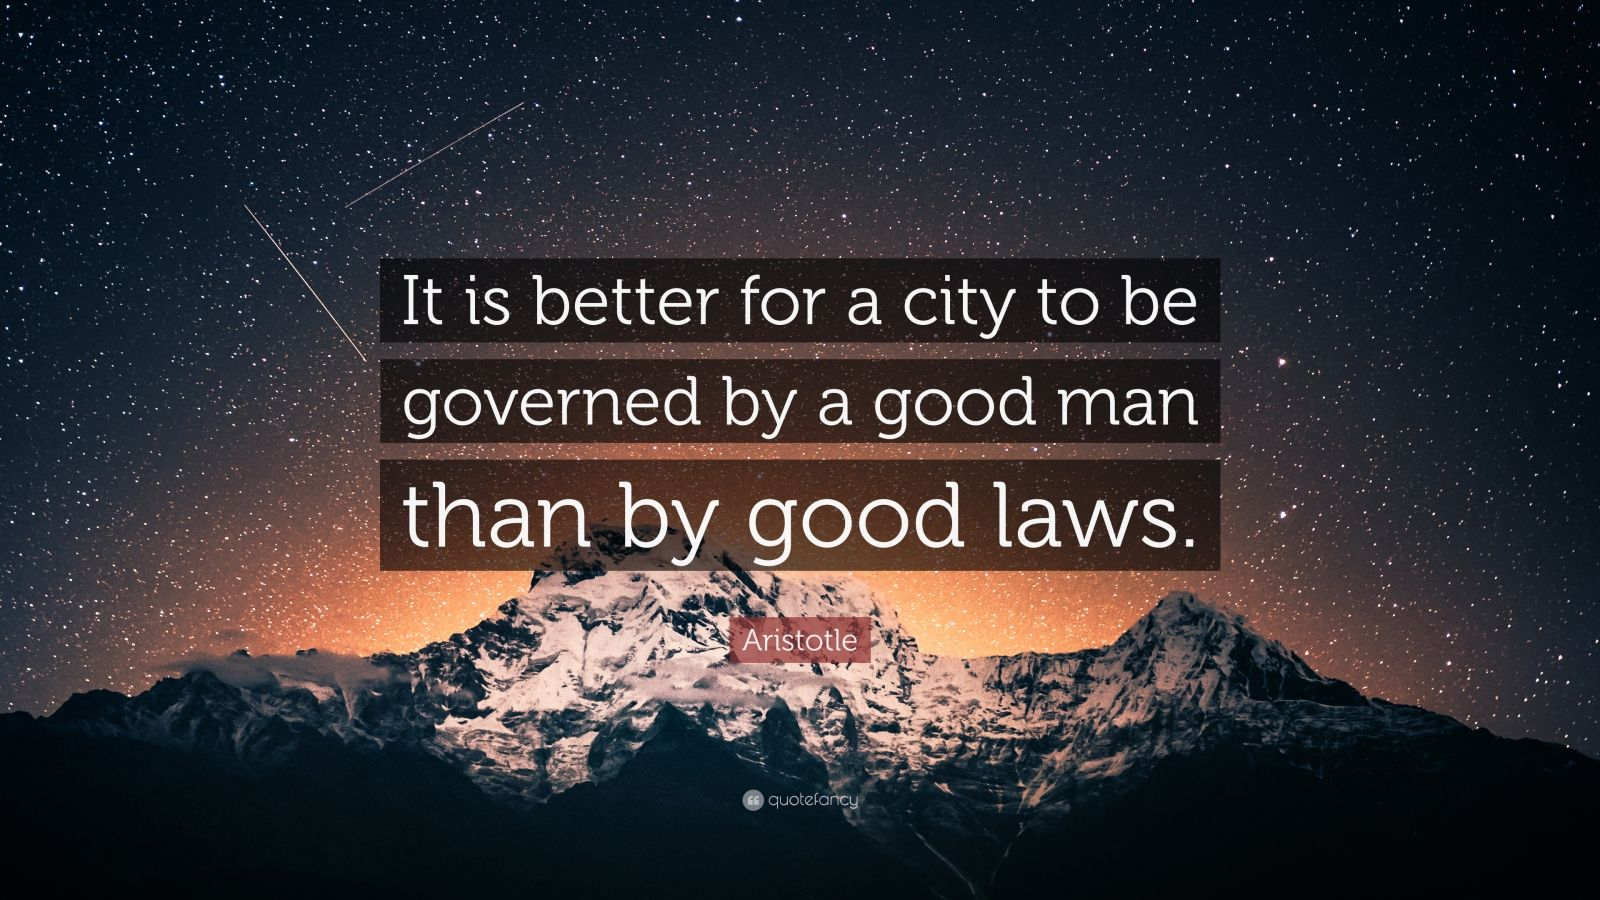 """Aristotle Quote: """"It is better for a city to be governed by a good man than by good laws."""""""